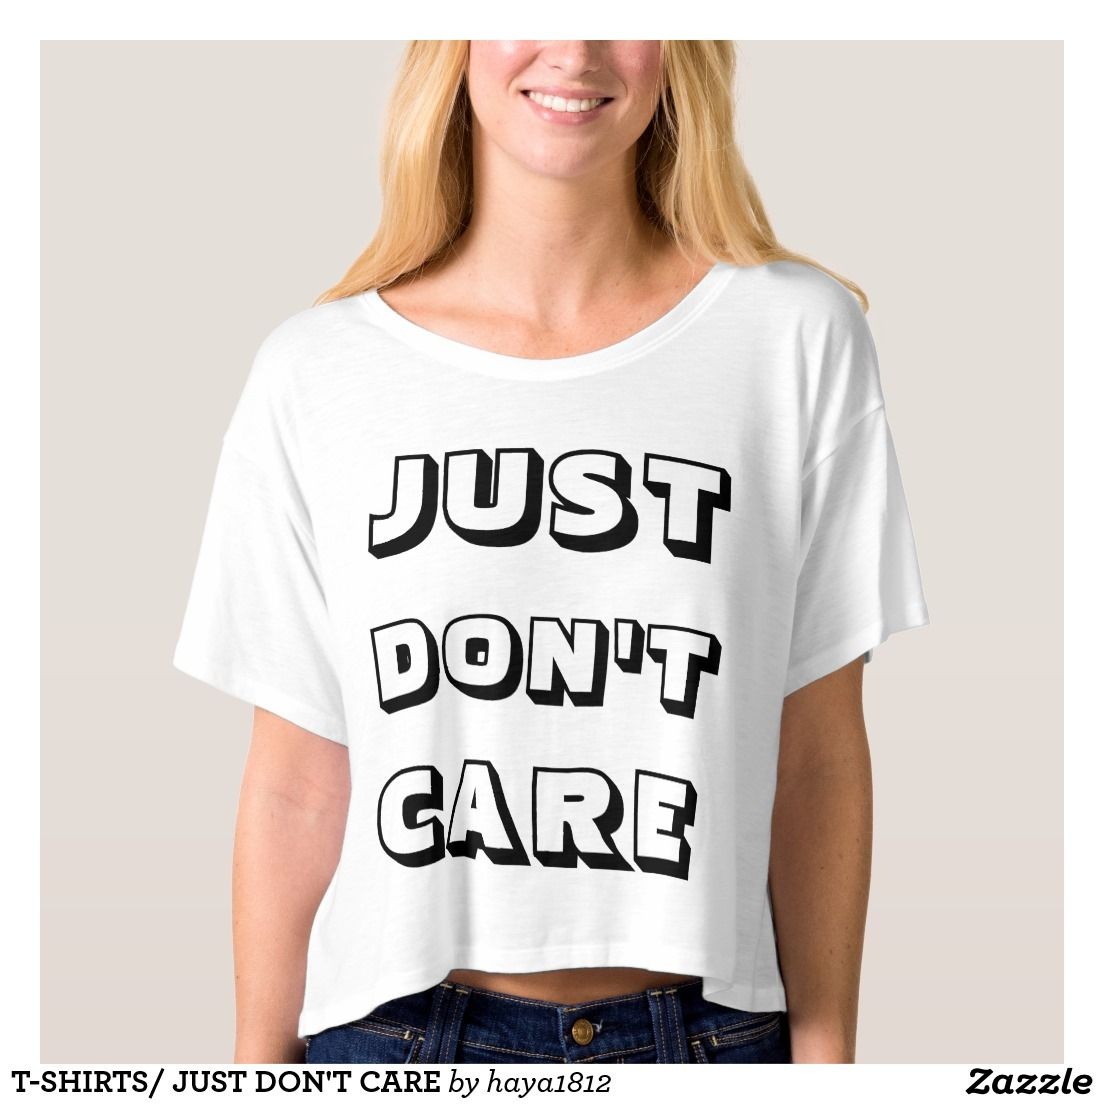 T-SHIRTS/ JUST DON'T CARE TSHIRT